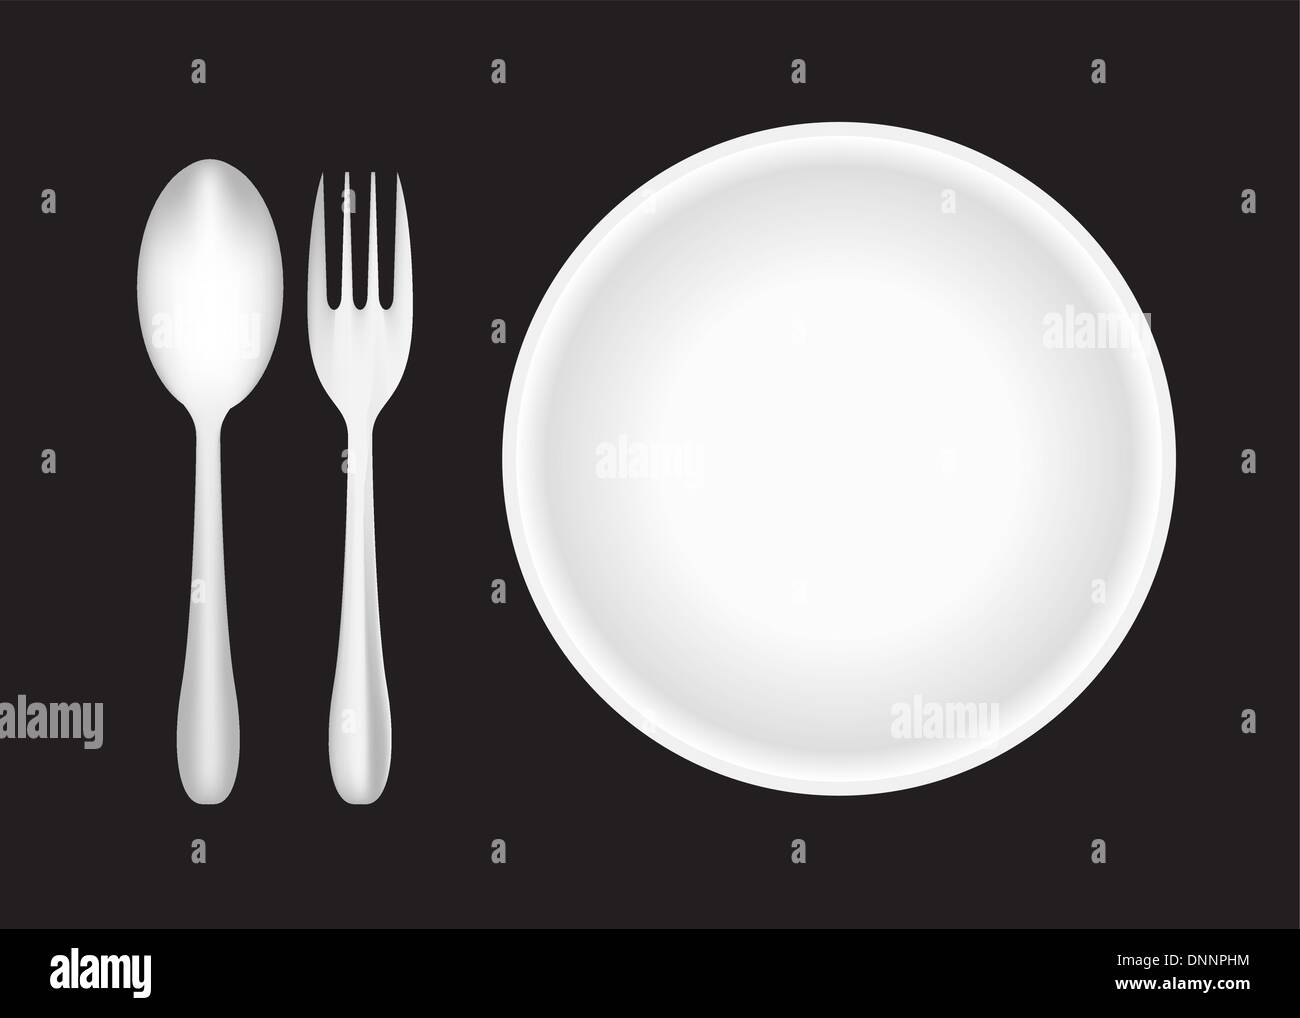 Plate, fork, and spoon - Stock Image